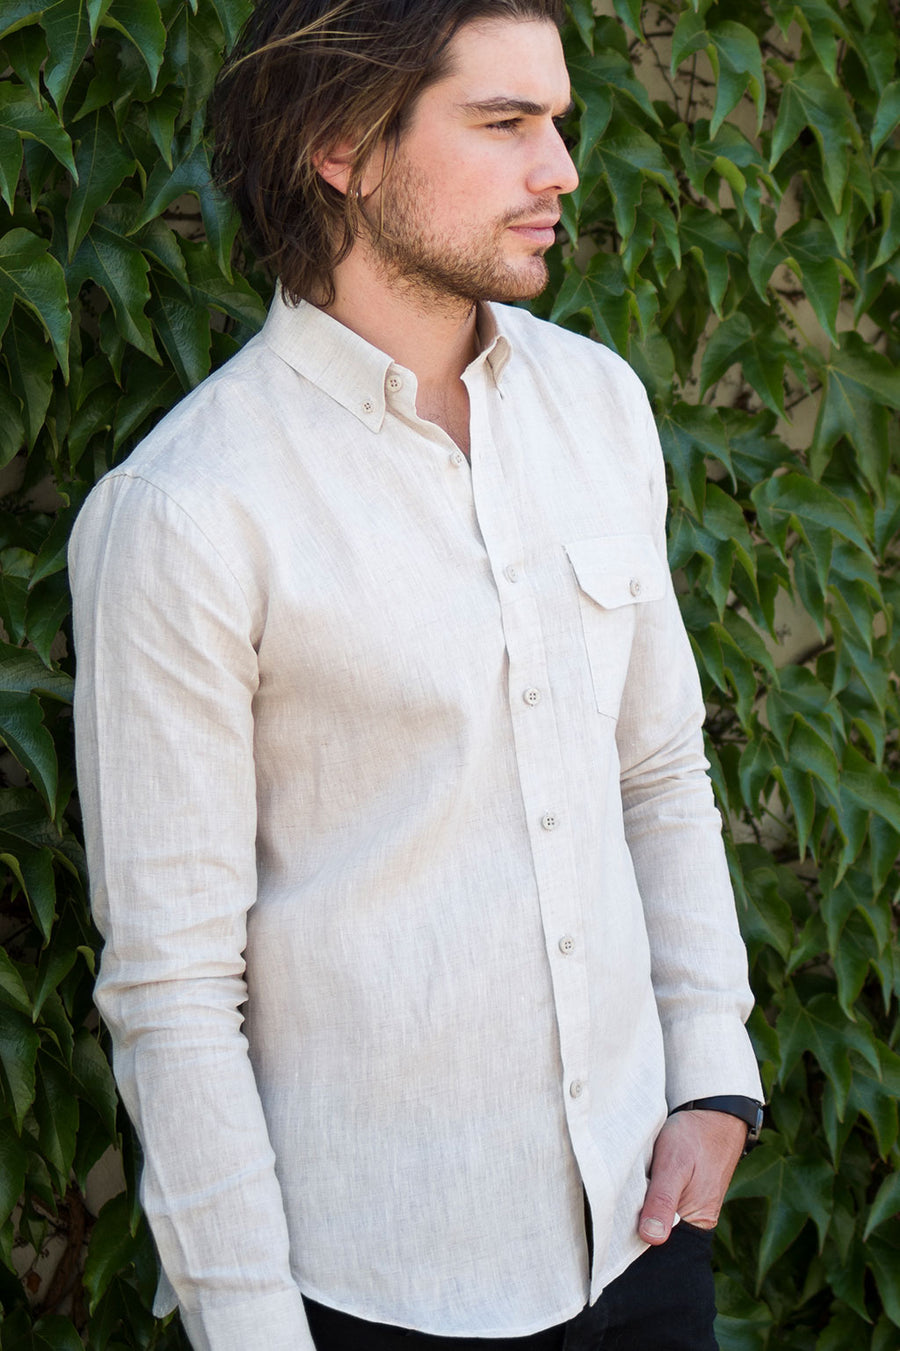 LONG SLEEVE OXFORD SHIRT IN NATURAL HEMP